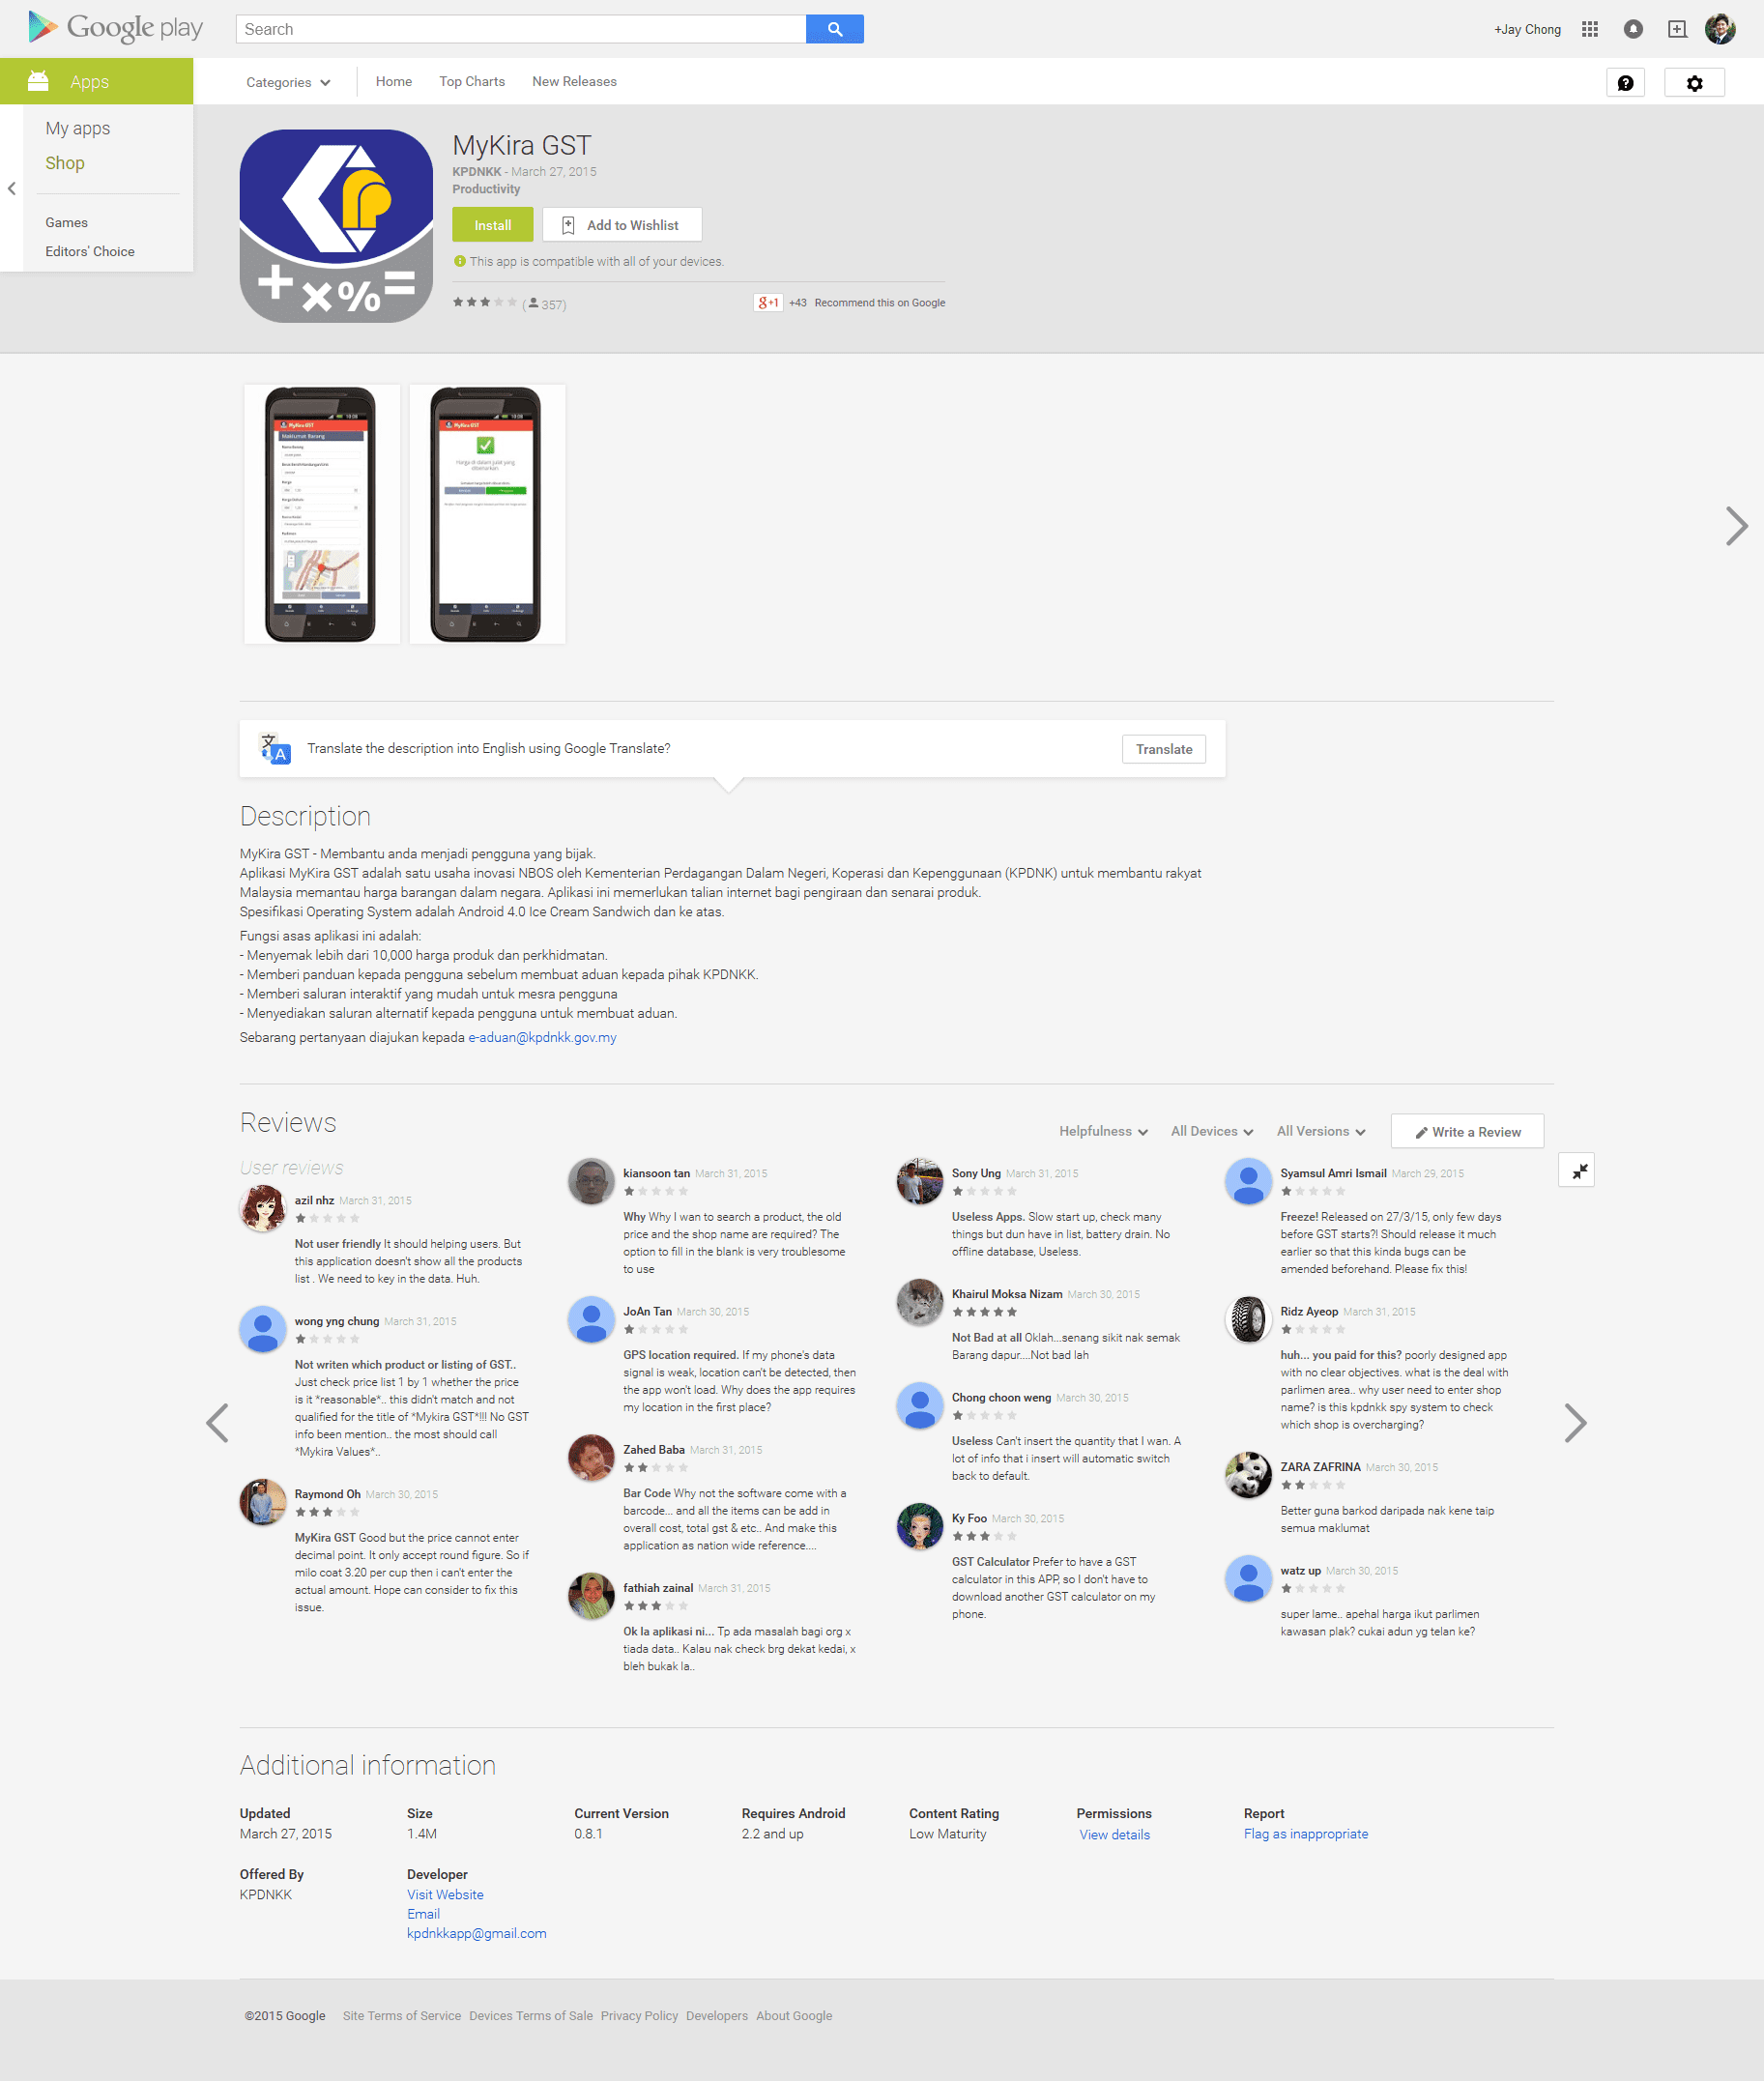 screenshot-play google com 2015-04-01 03-36-25